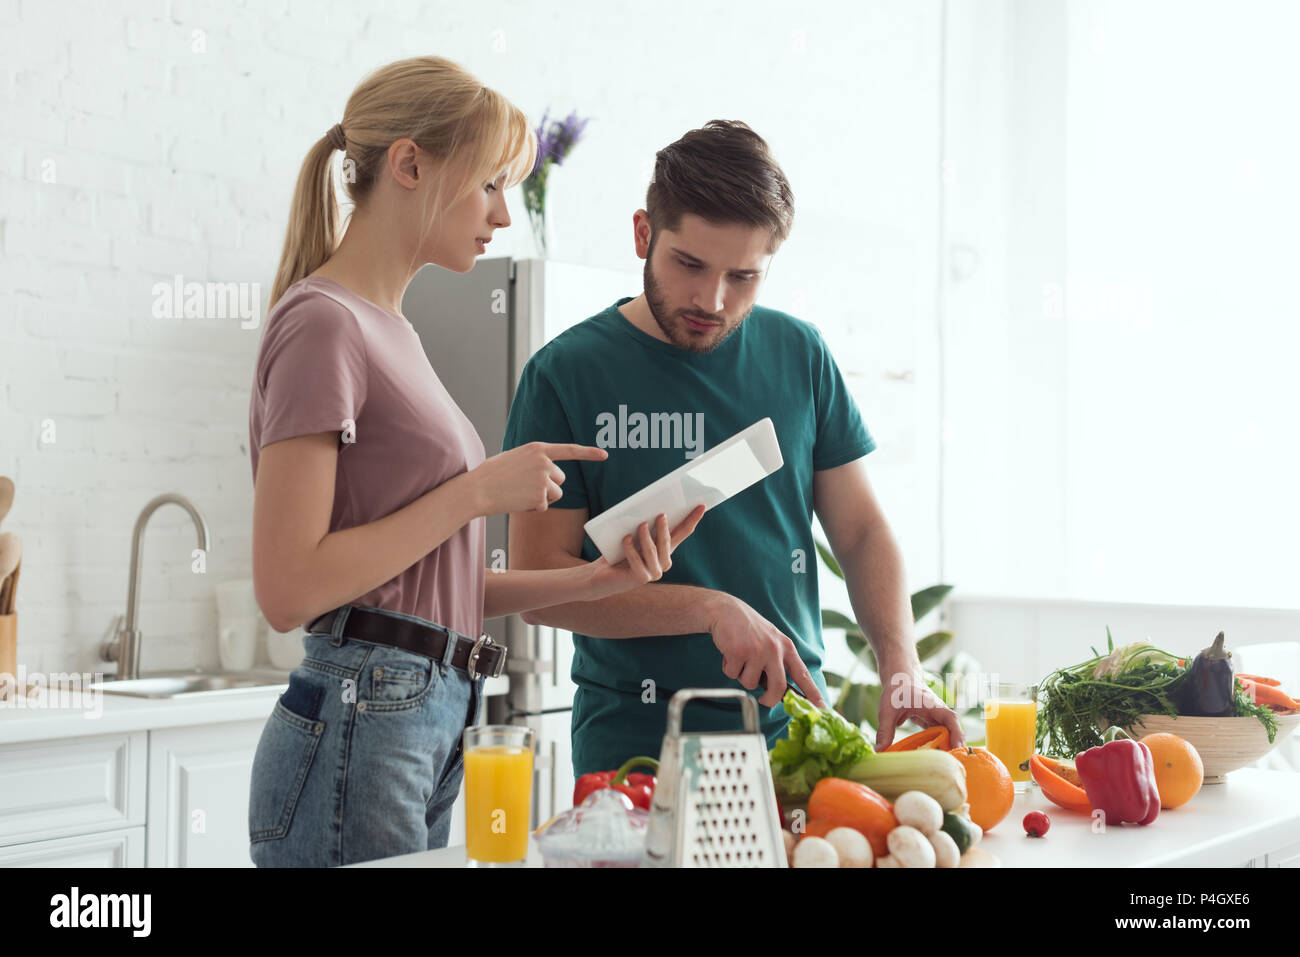 girlfriend pointing on tablet with recipe during cooking at kitchen, vegan concept - Stock Image